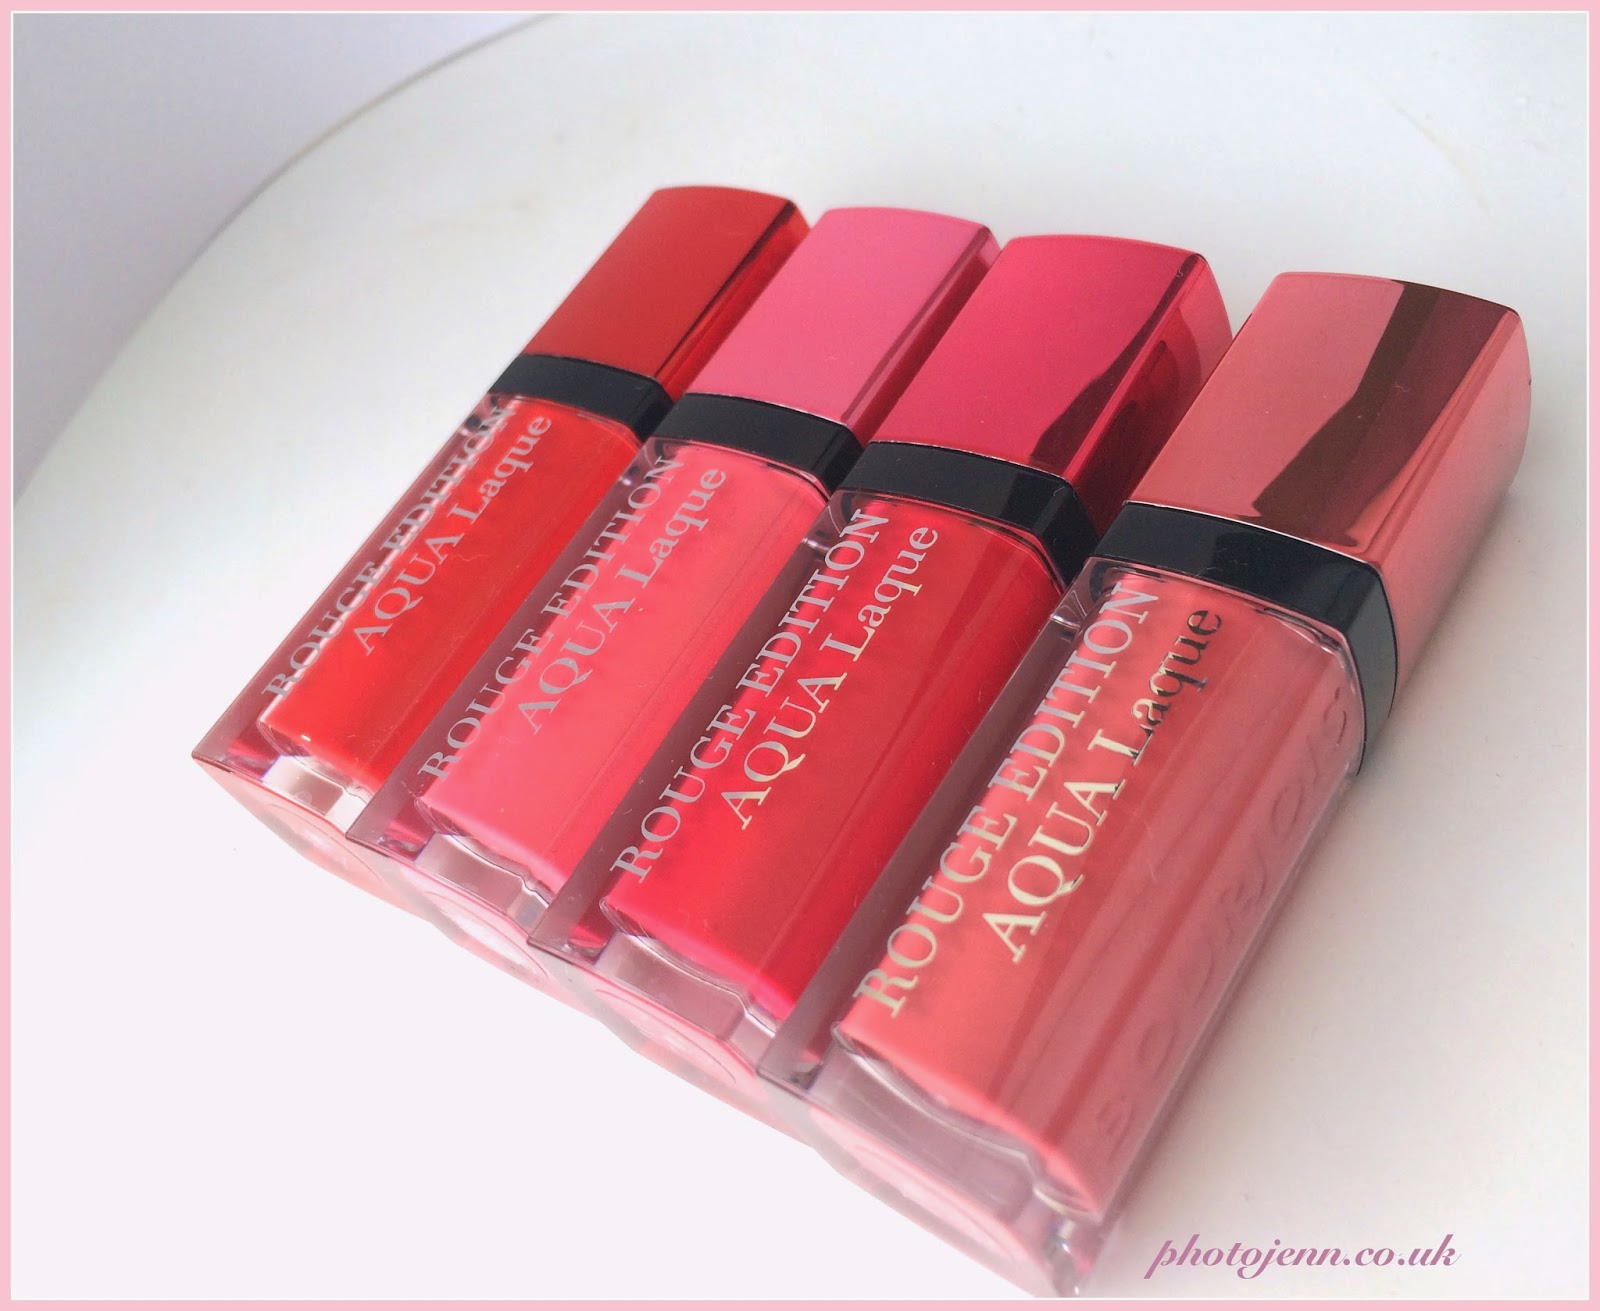 bourjois-new-aqua-laque-rouge-edition-shades-Babe-Idole-Appechissant-Fuchsia-perche-Feeling-Reddy